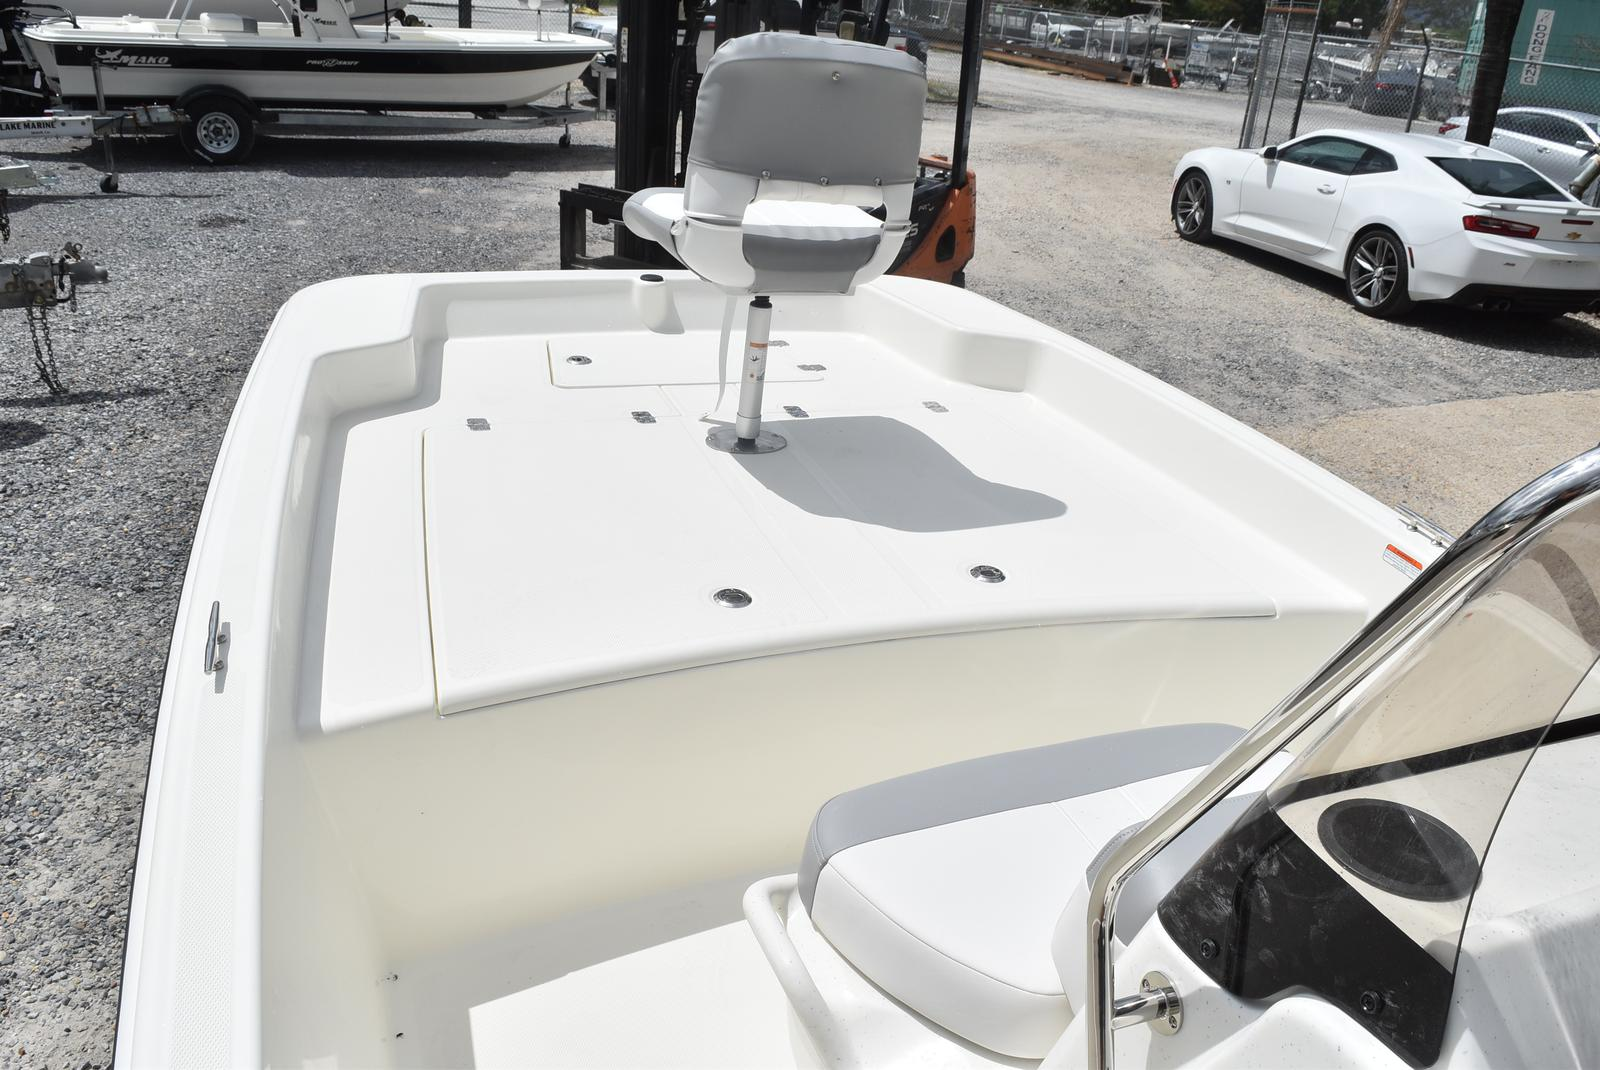 2020 Mako boat for sale, model of the boat is Pro Skiff 17, 75 ELPT & Image # 403 of 702